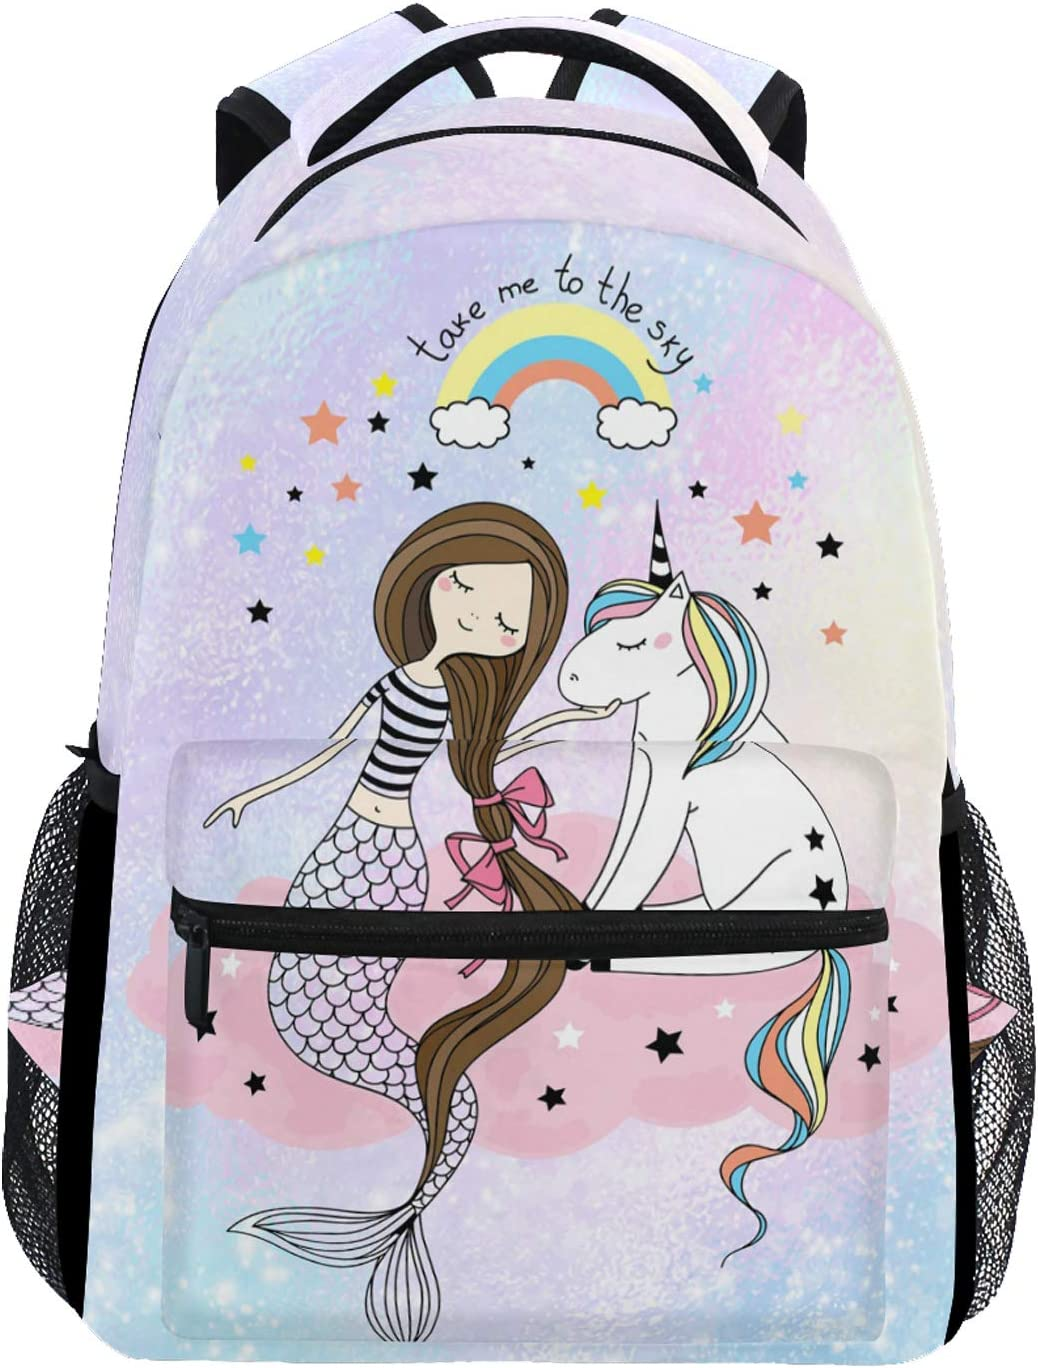 Backpack for Girls Chasechic Water-Resistant Toddler Backpack for Kids Preschool Backpack with Chest Strap Mermaid